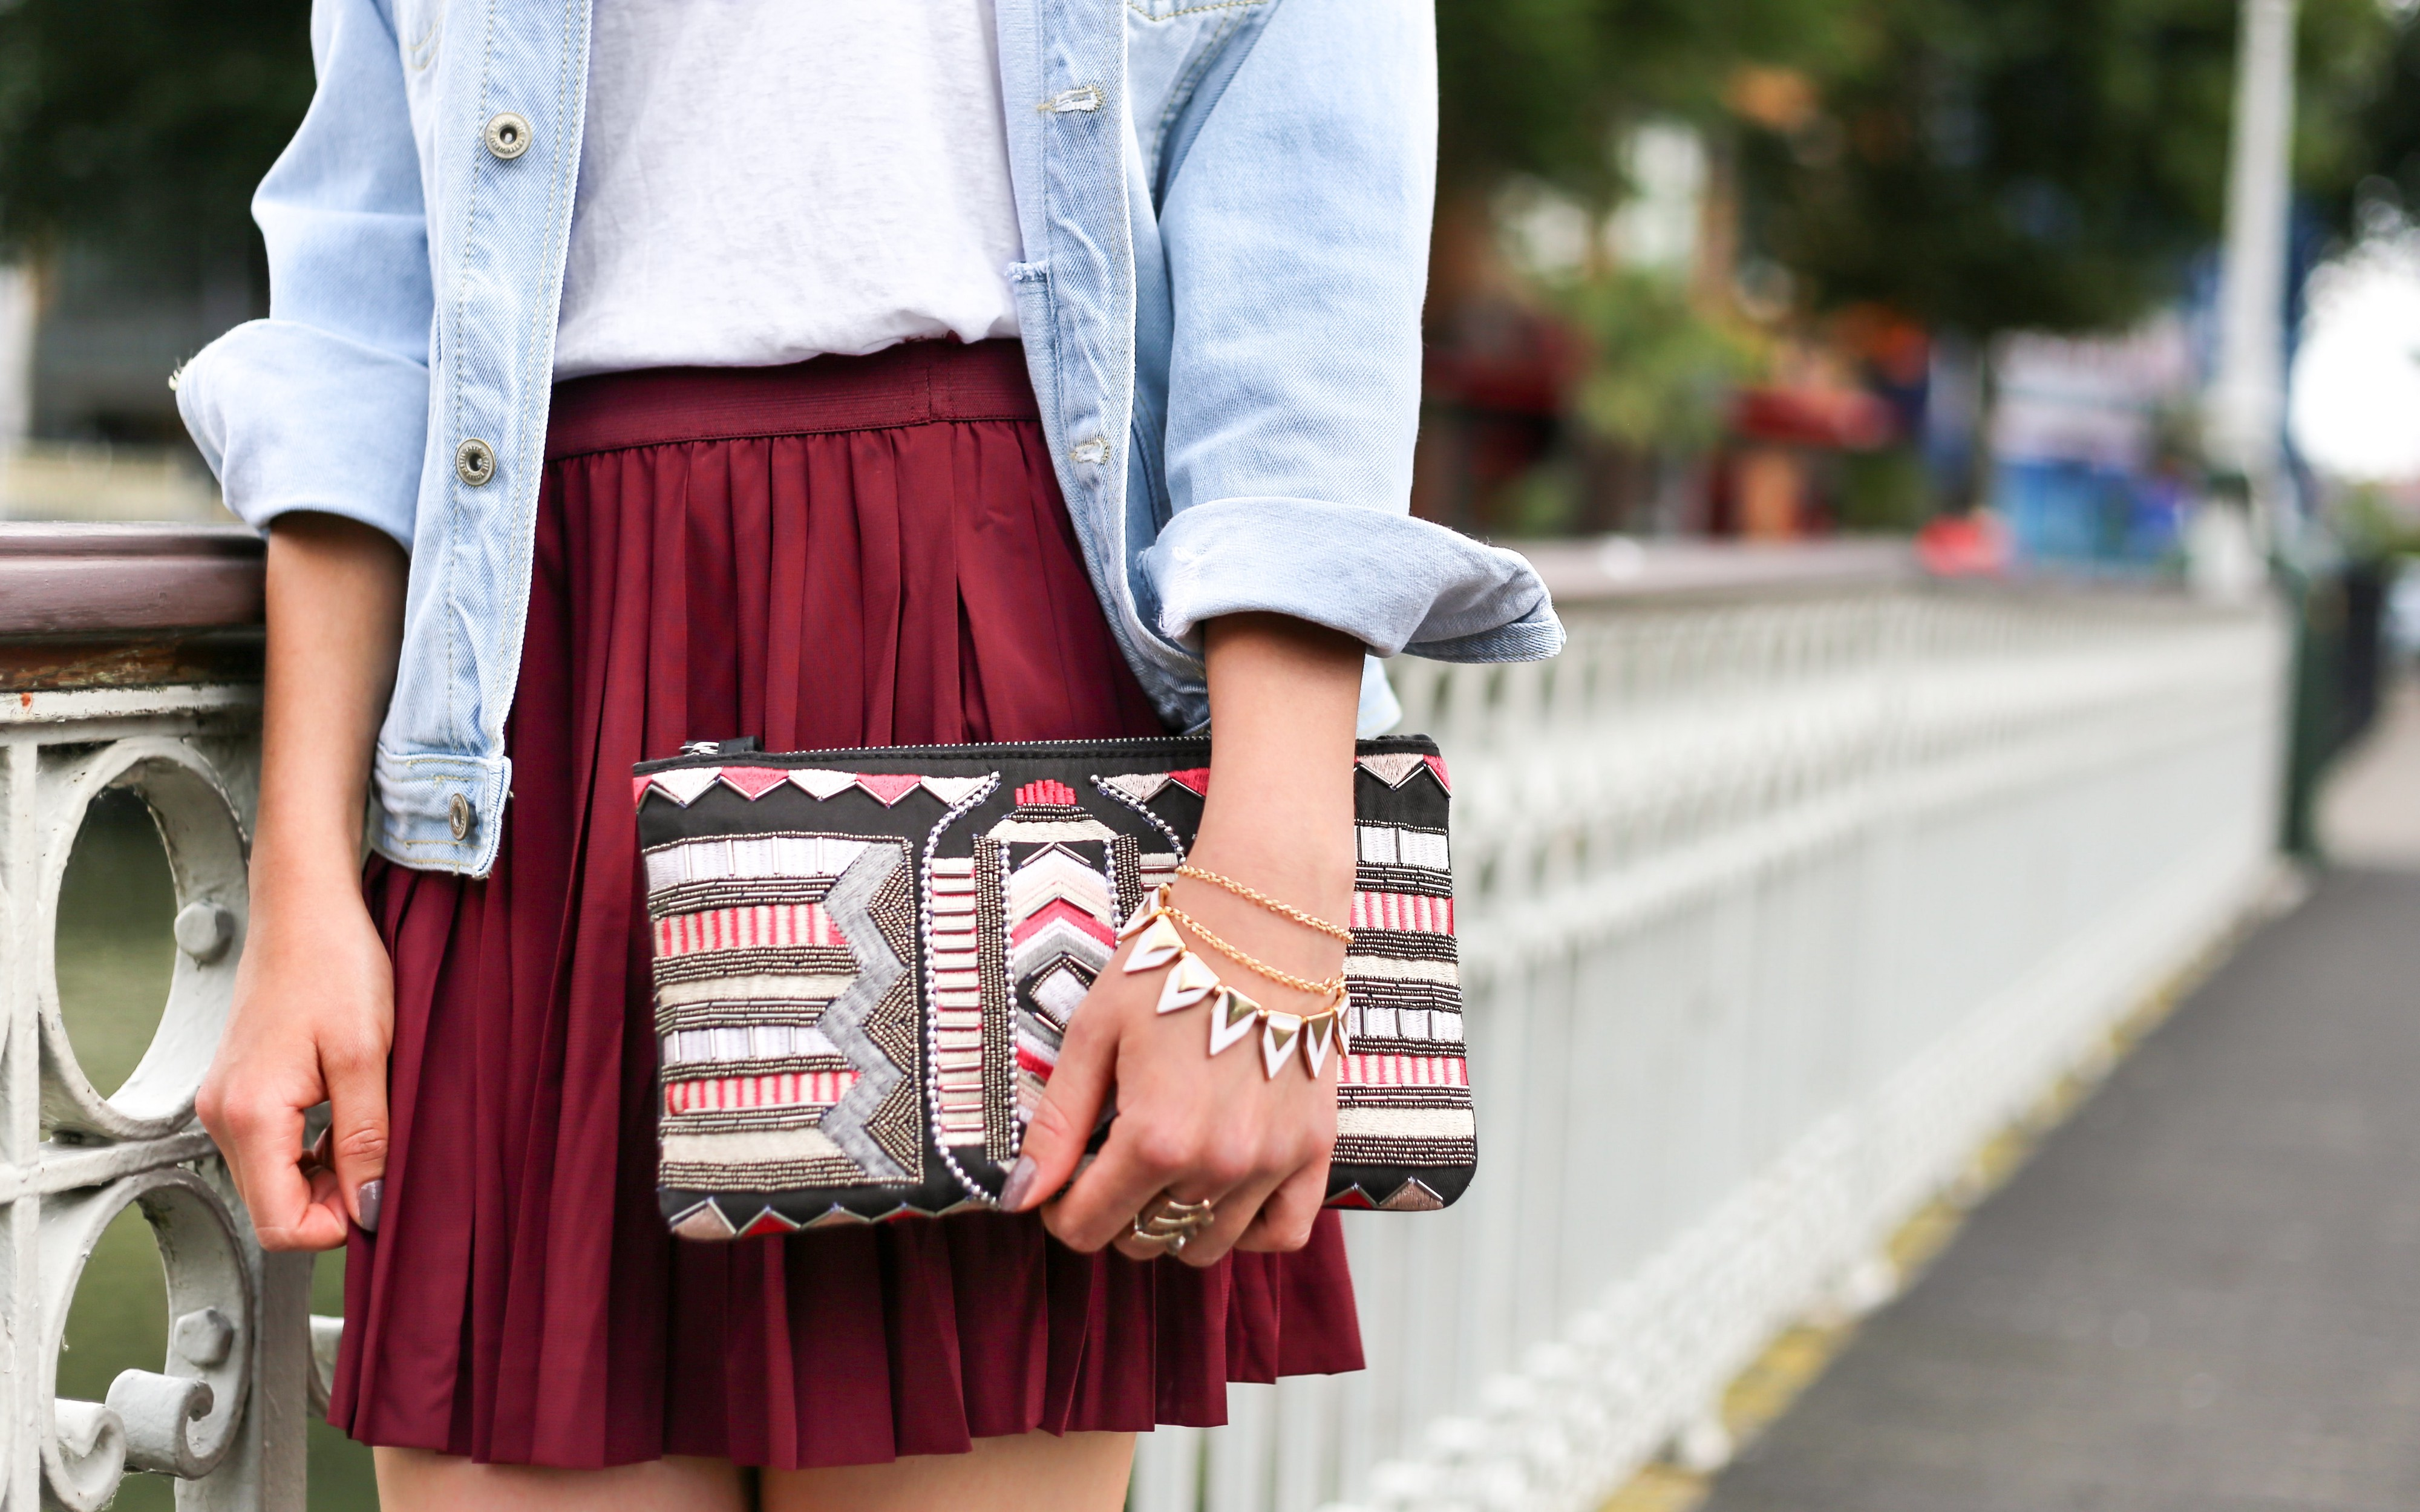 Middle of a person in a short, pleated, pocketless skirt, wearing bracelets and rings, and holding a strapless clutch purse.